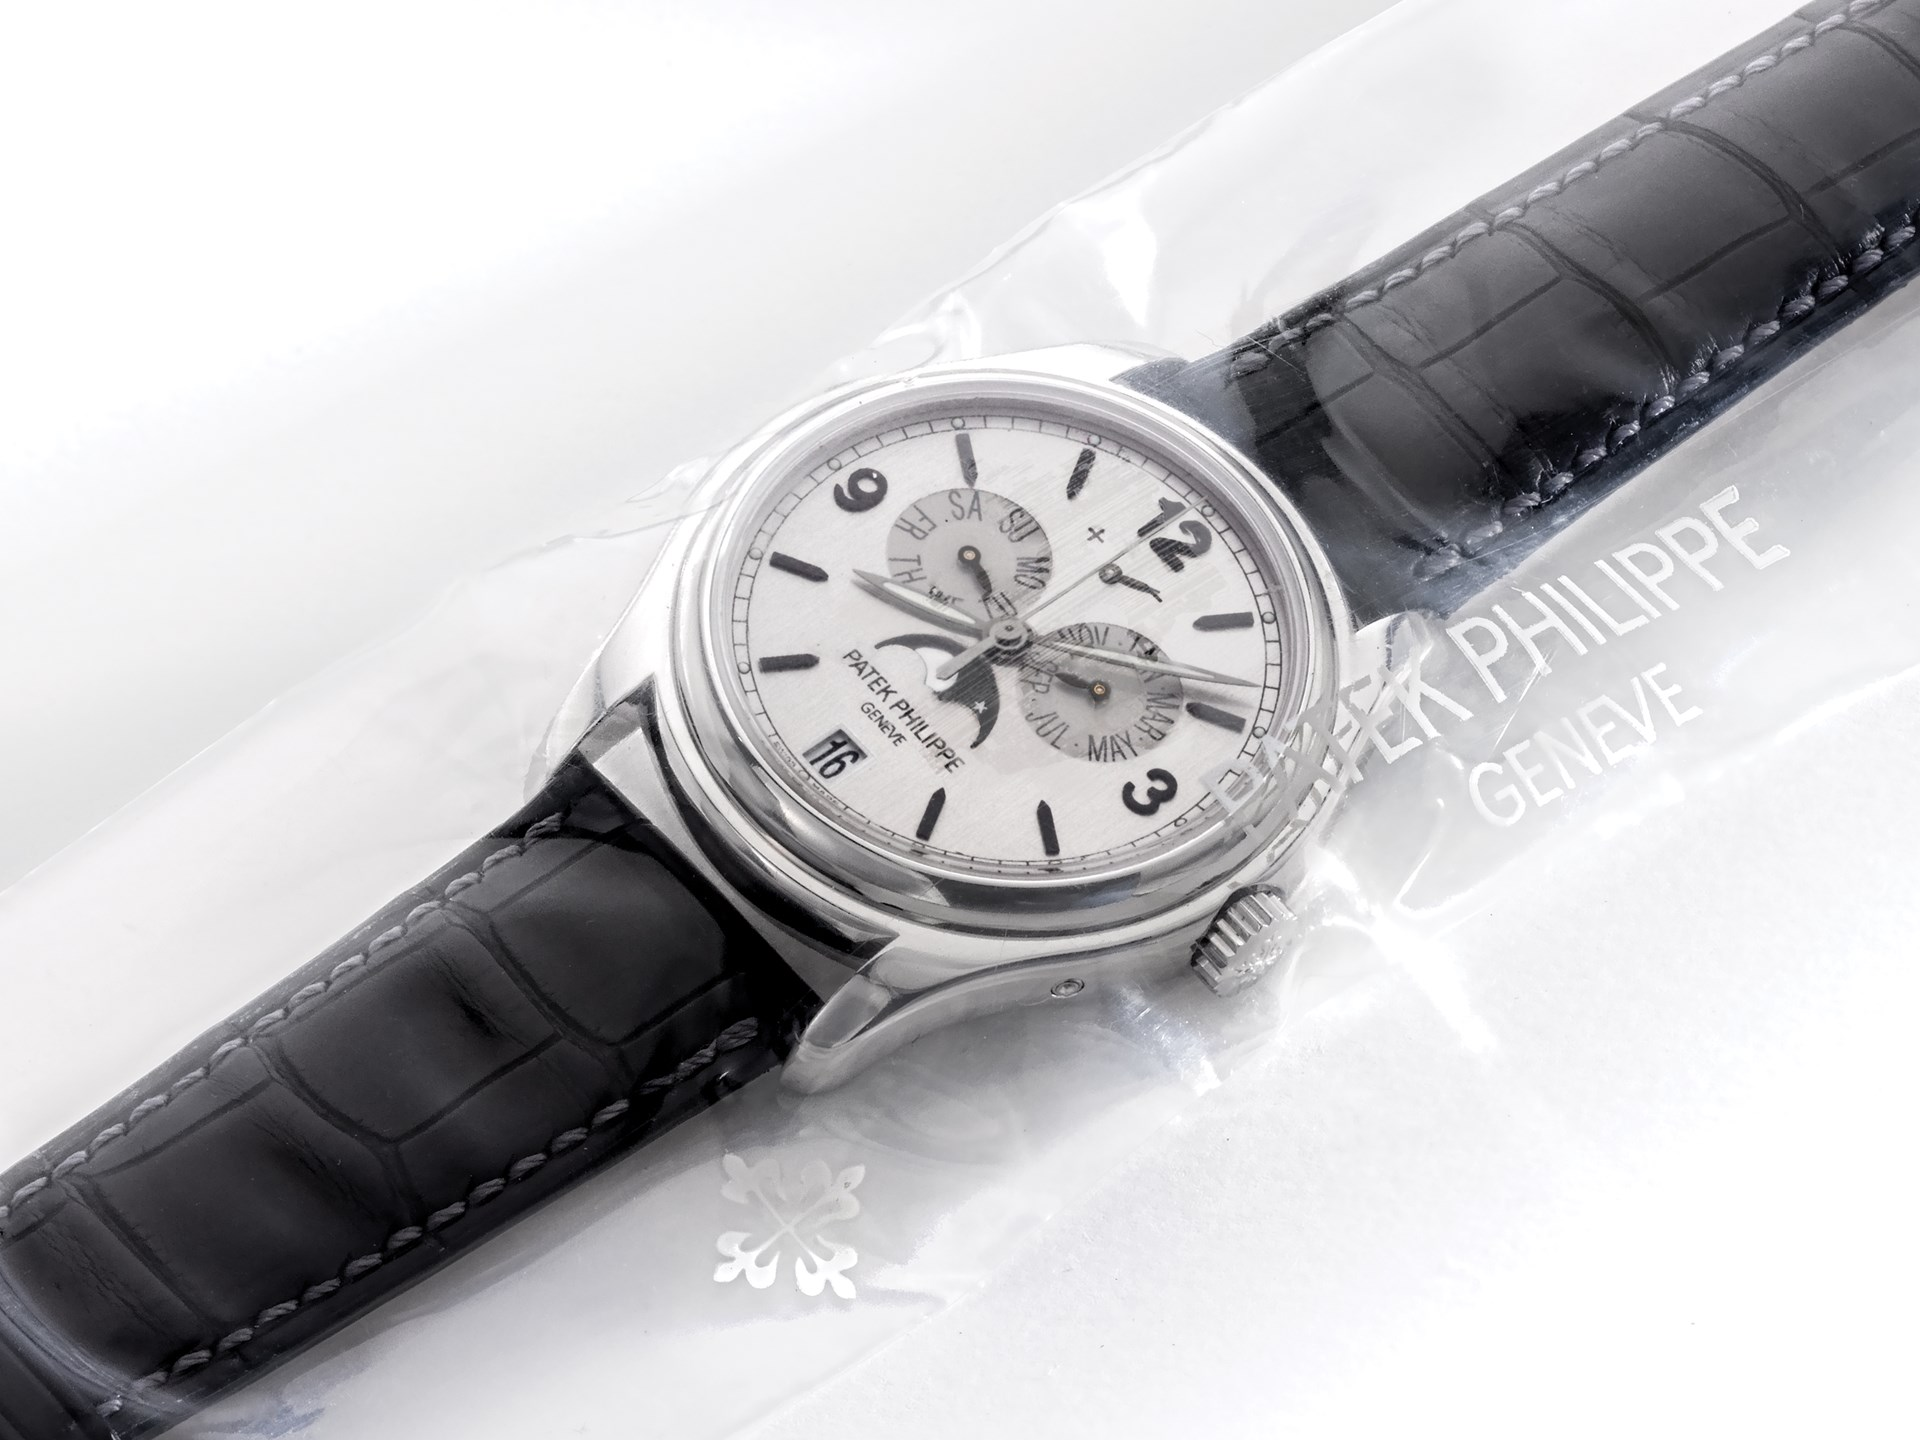 Patek Philippe, Fine White Gold Automatic Calendar Wristwatch with Moon Phases and Power Reserve Indication